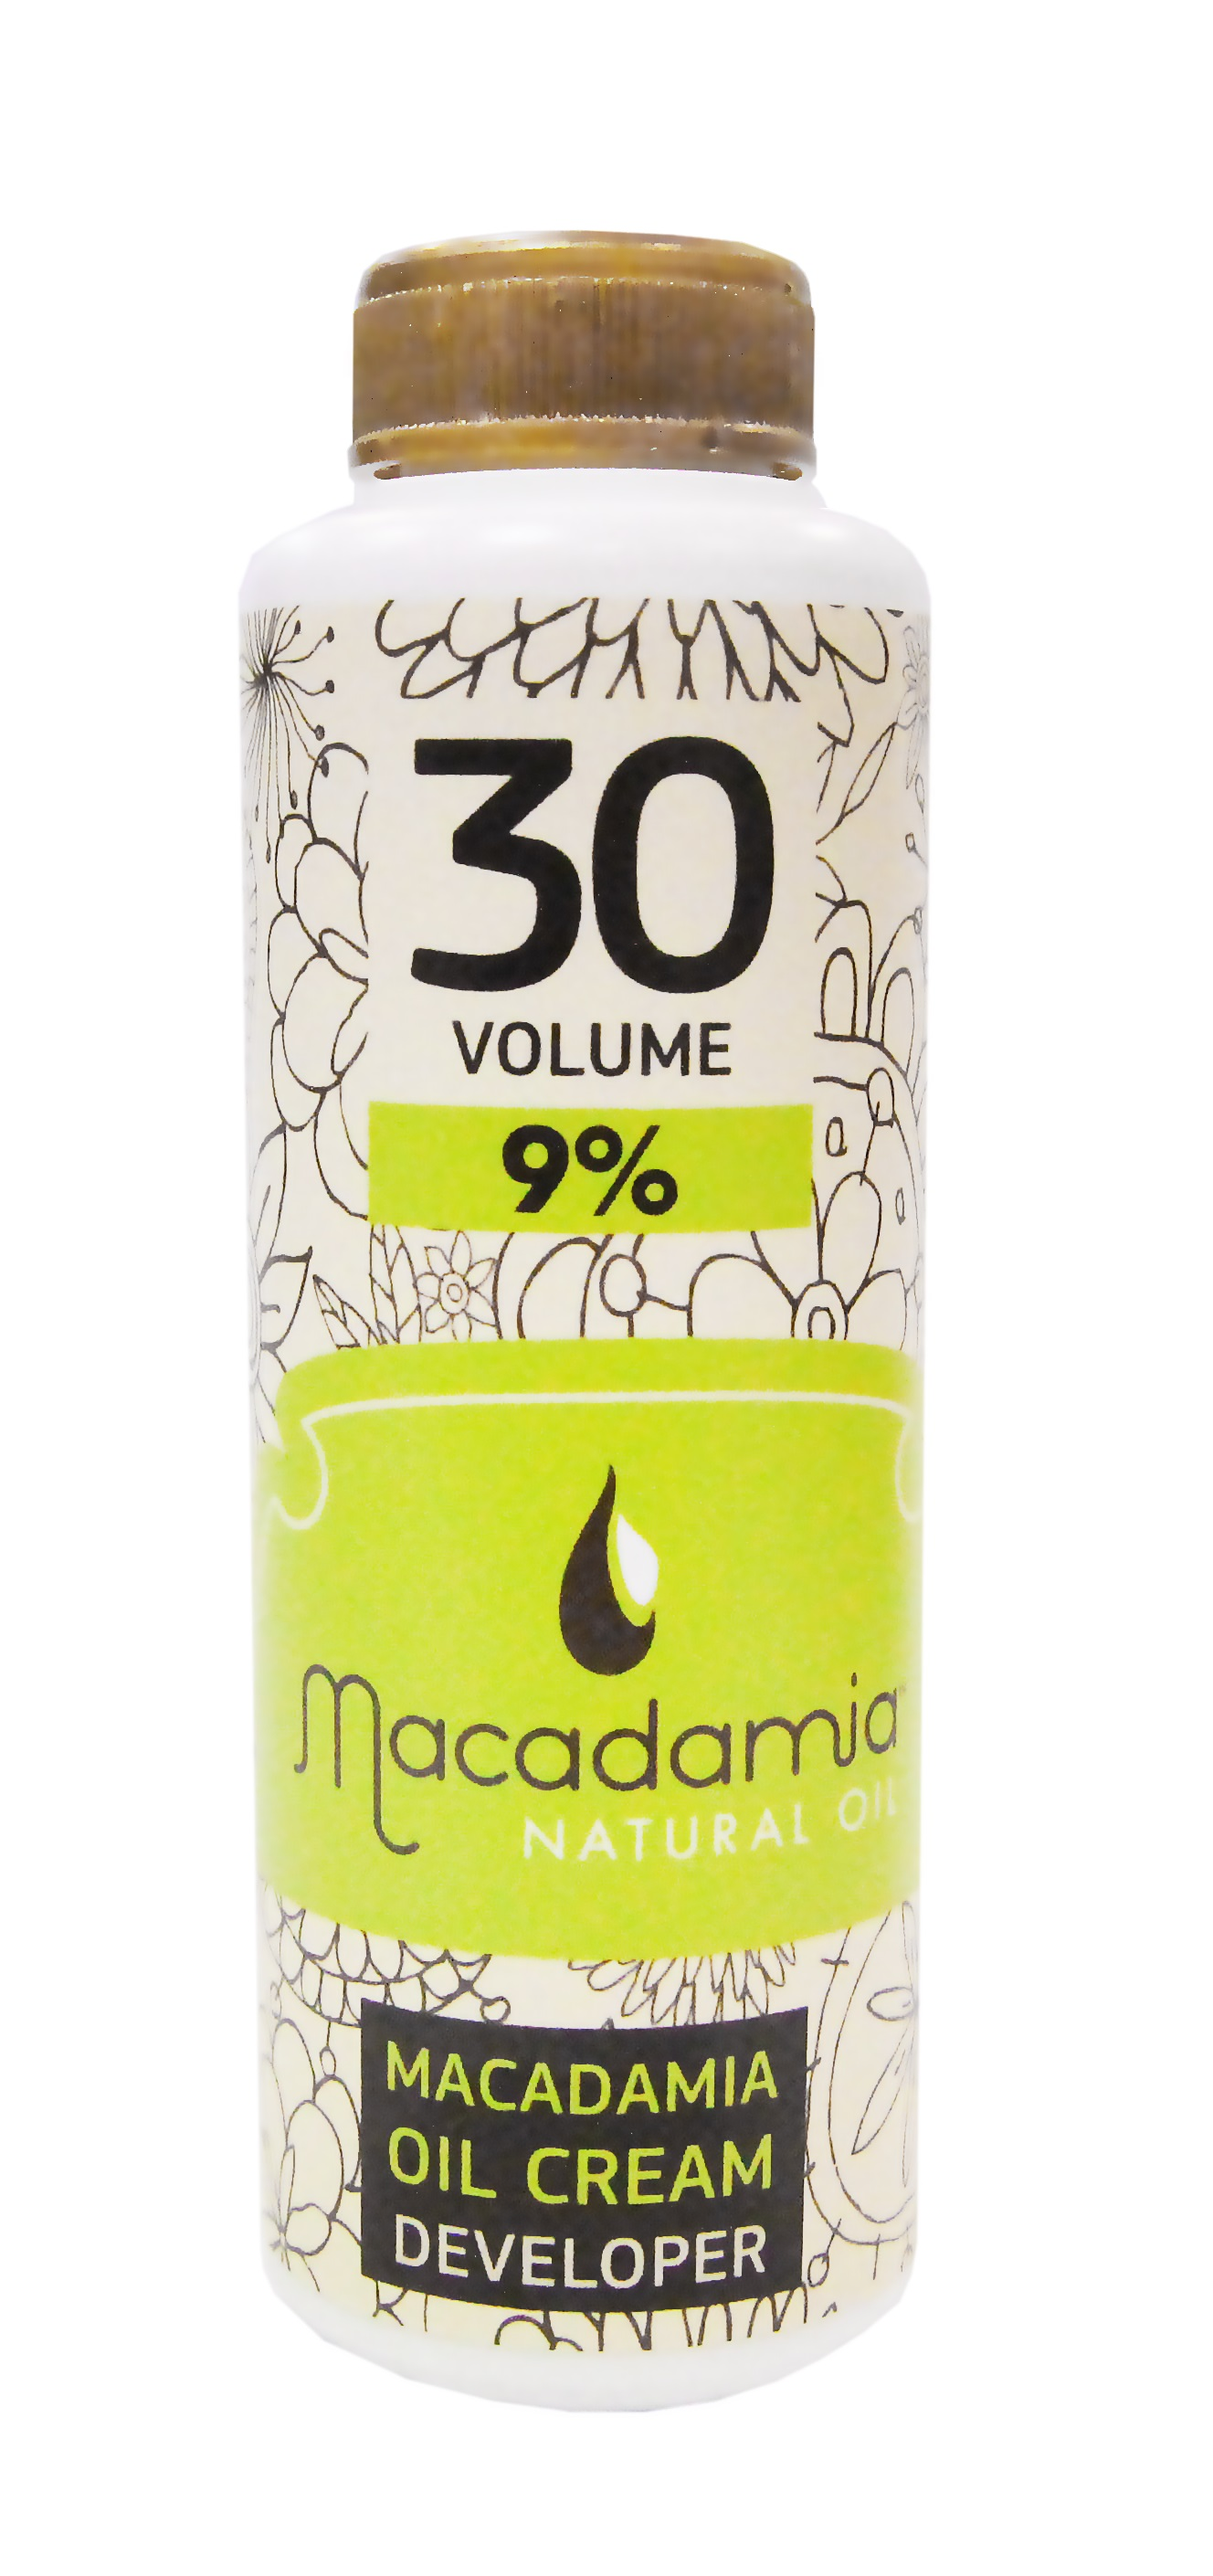 MACADAMIA Natural Oil Окислитель 9% (30 vol) / Cream Color 100 мл